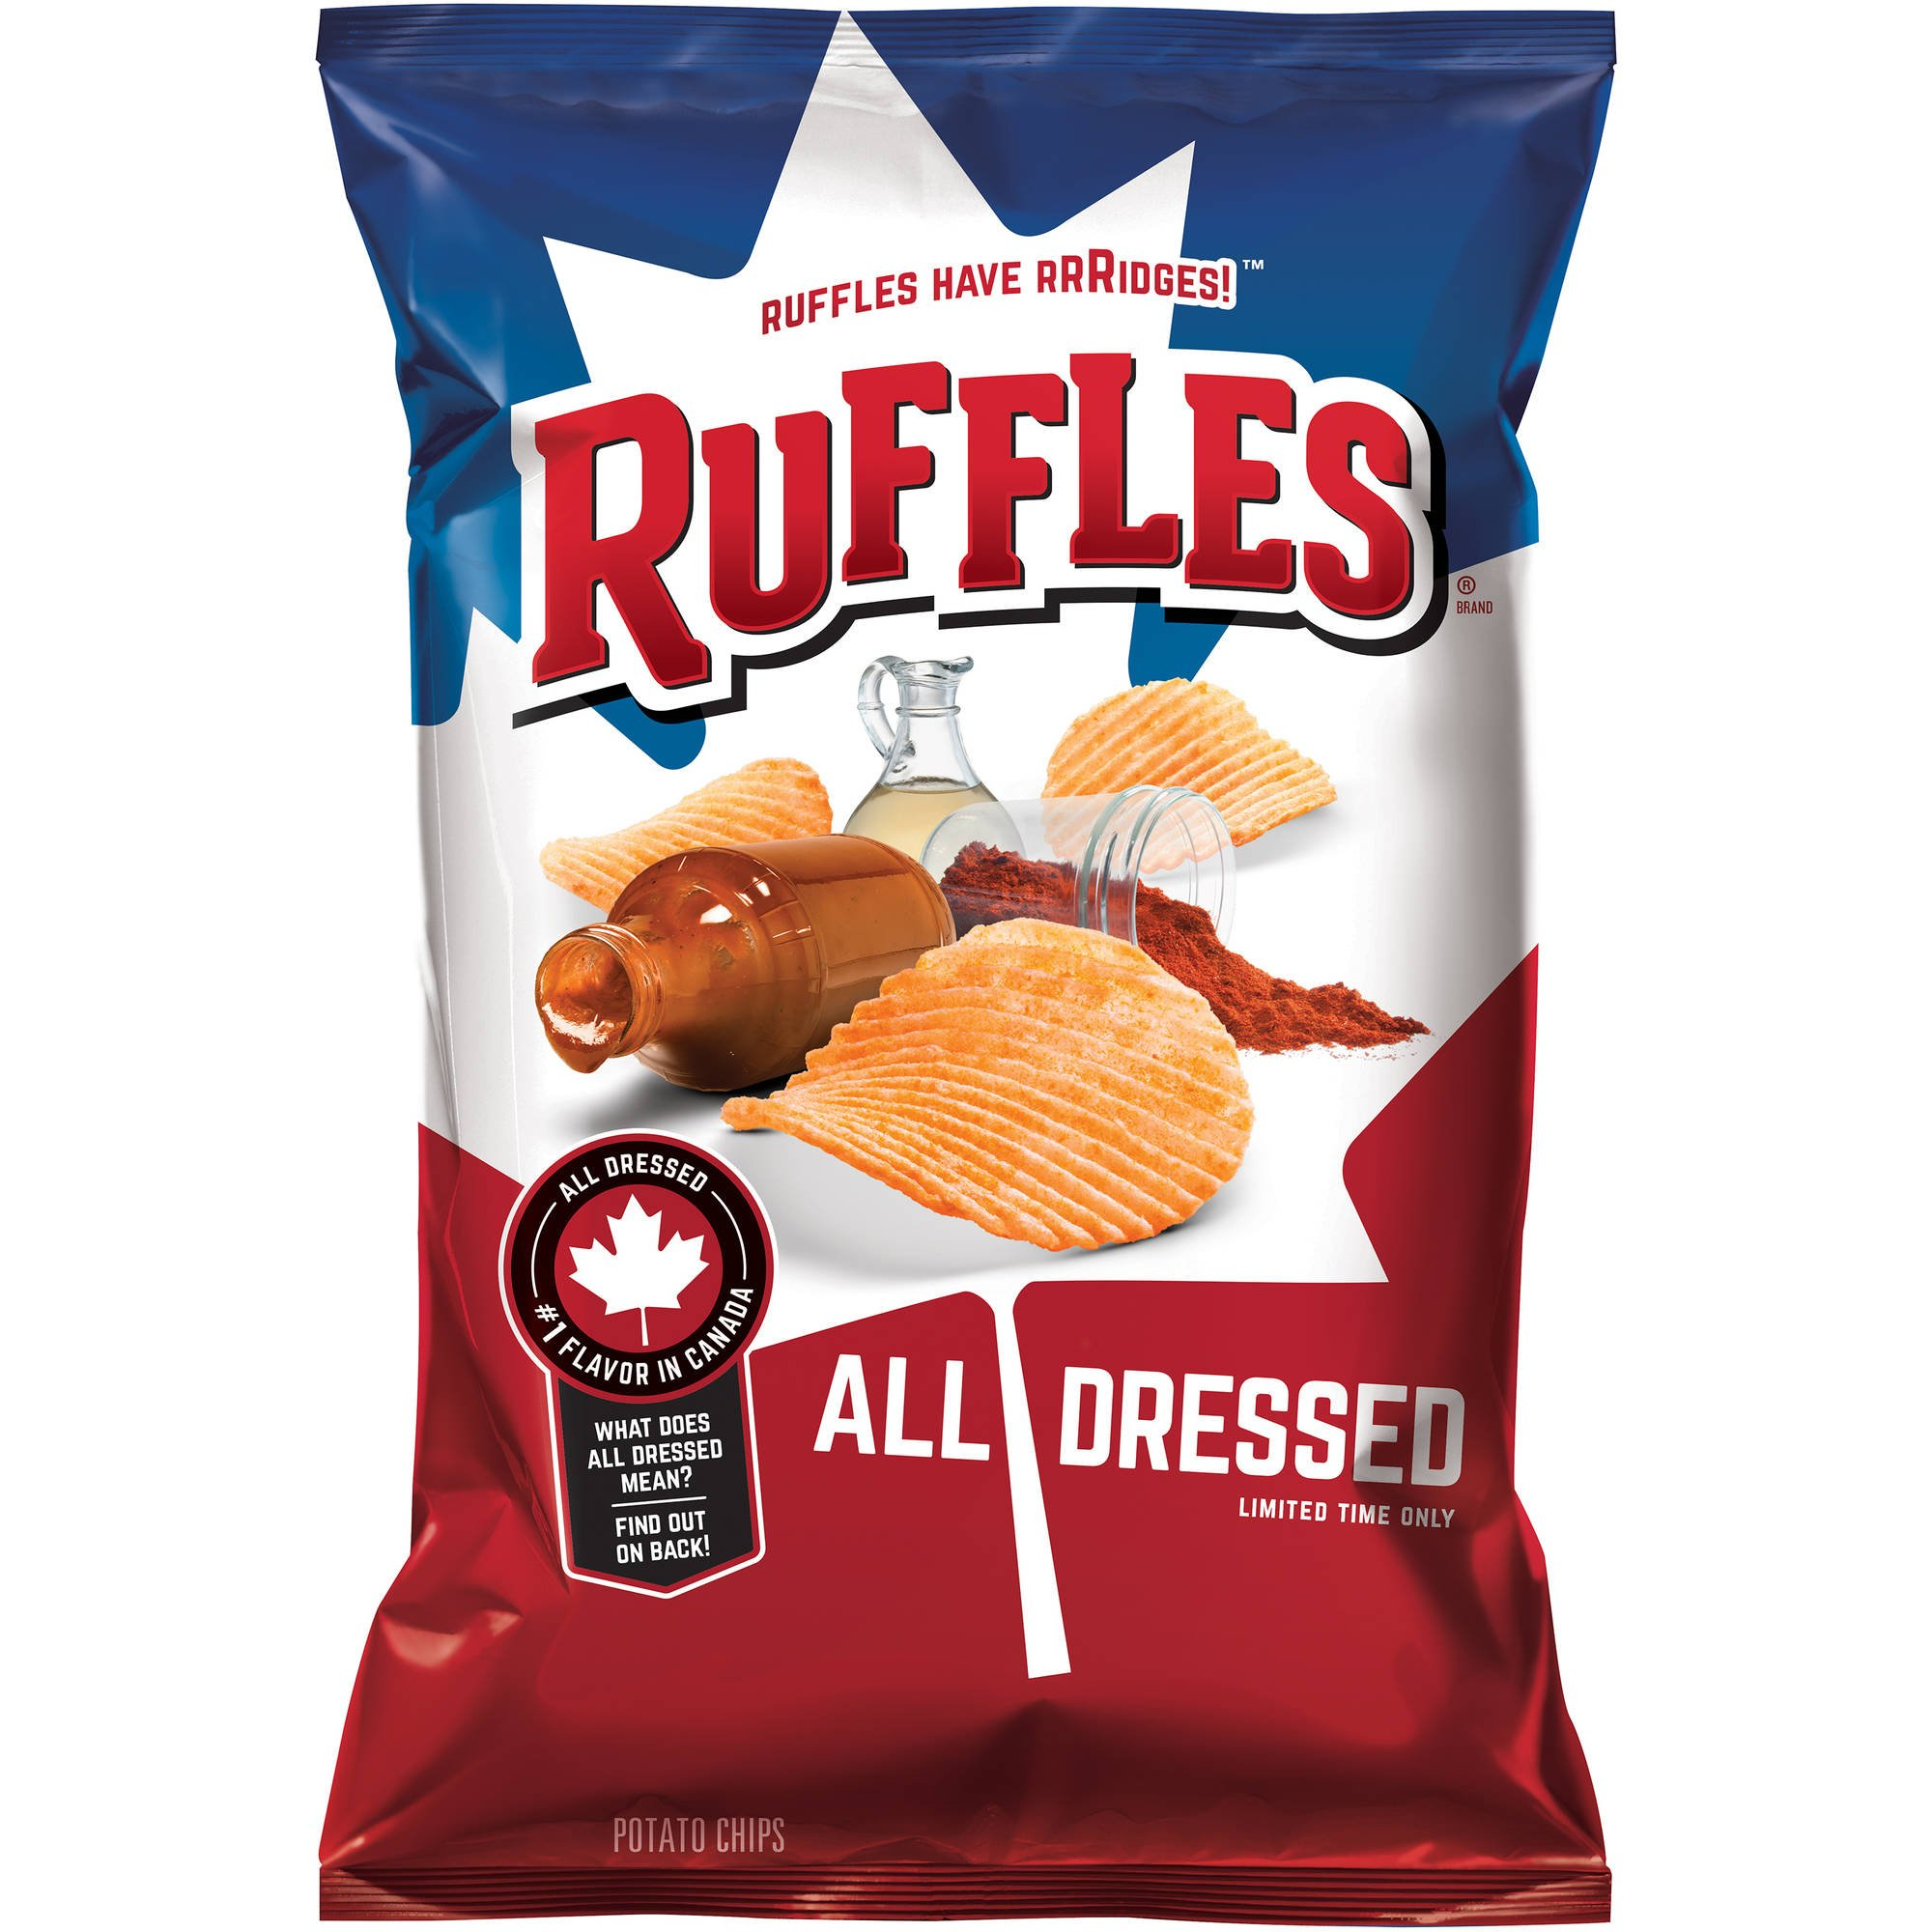 Ruffles All Dressed Ridged Potato Chips, 8.5 Ounce by Ruffles